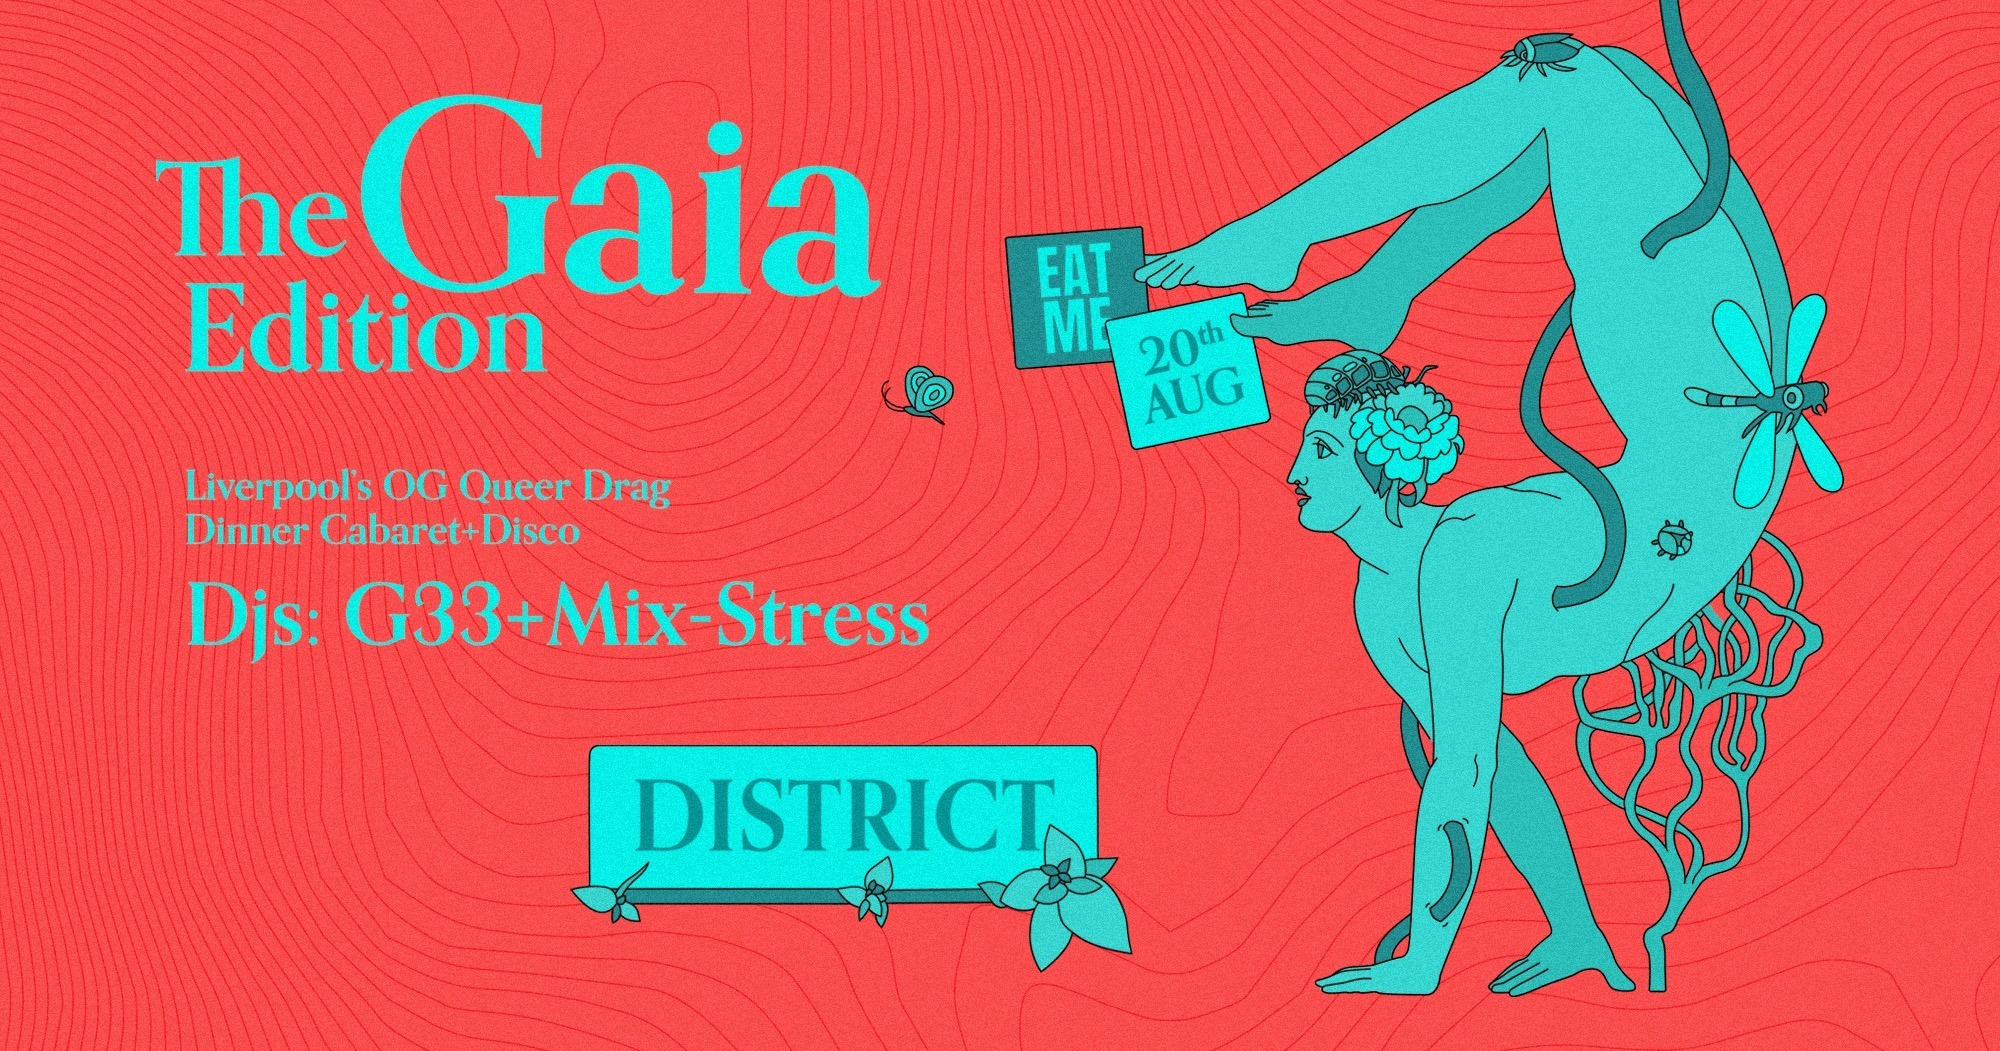 20th August Eat Me: The Gaia Edition